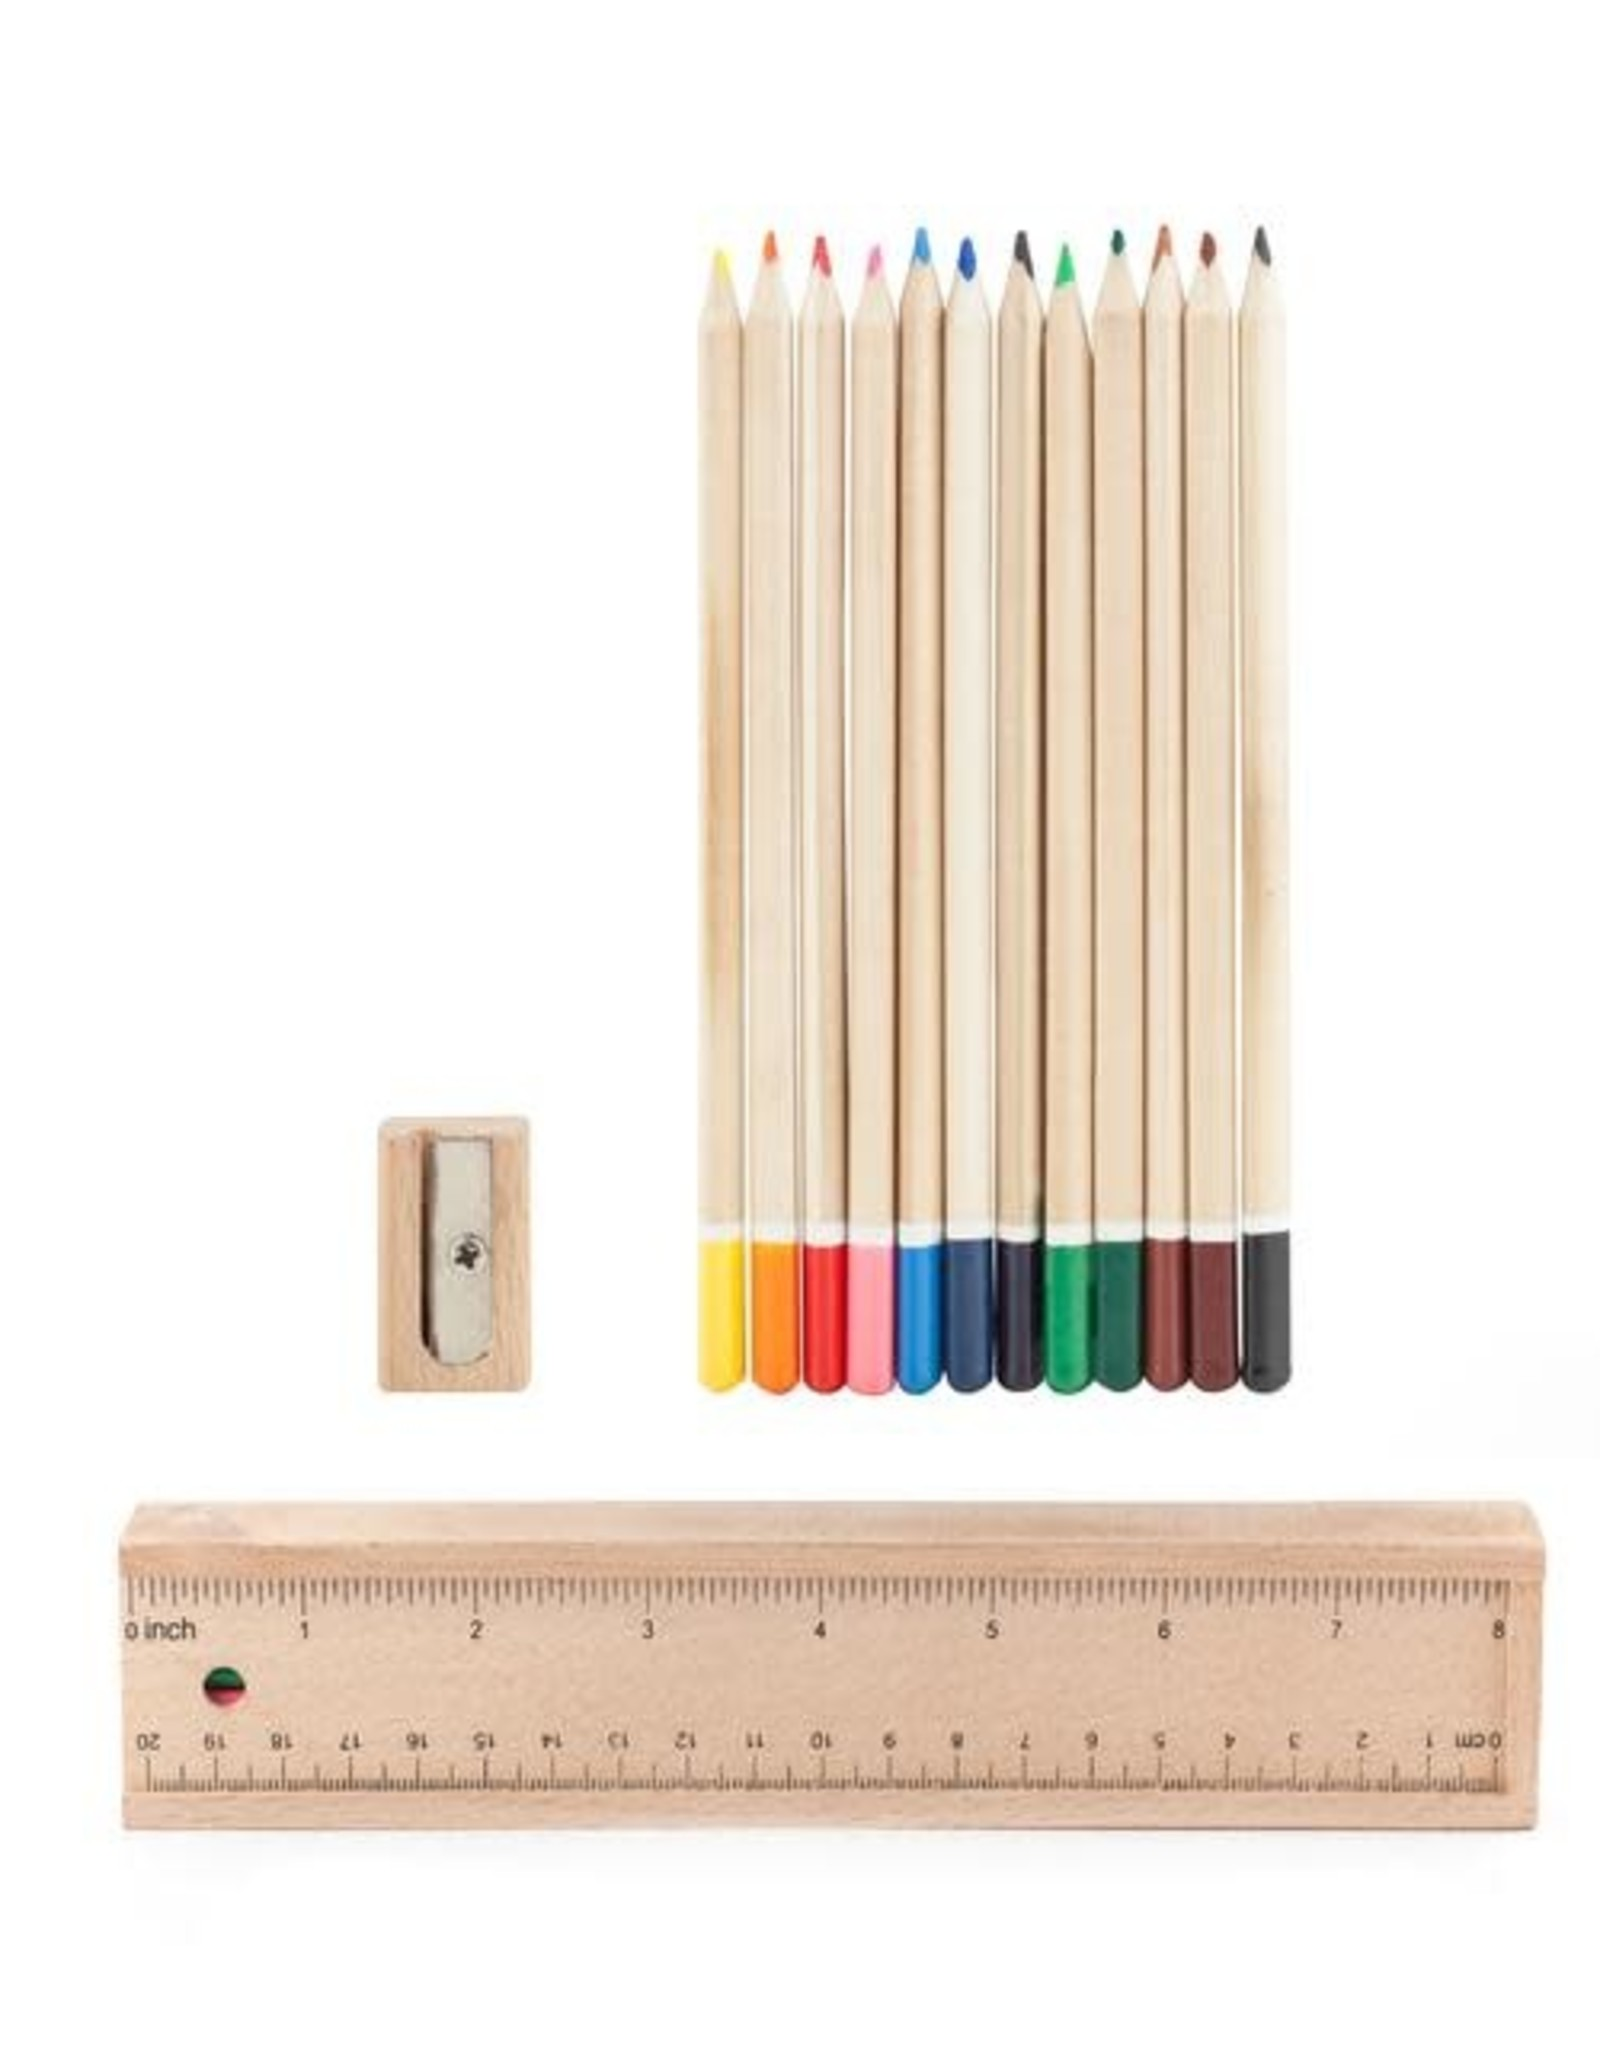 Kikkerland Wood Colored Pencil Doodle Box - Kikkerland